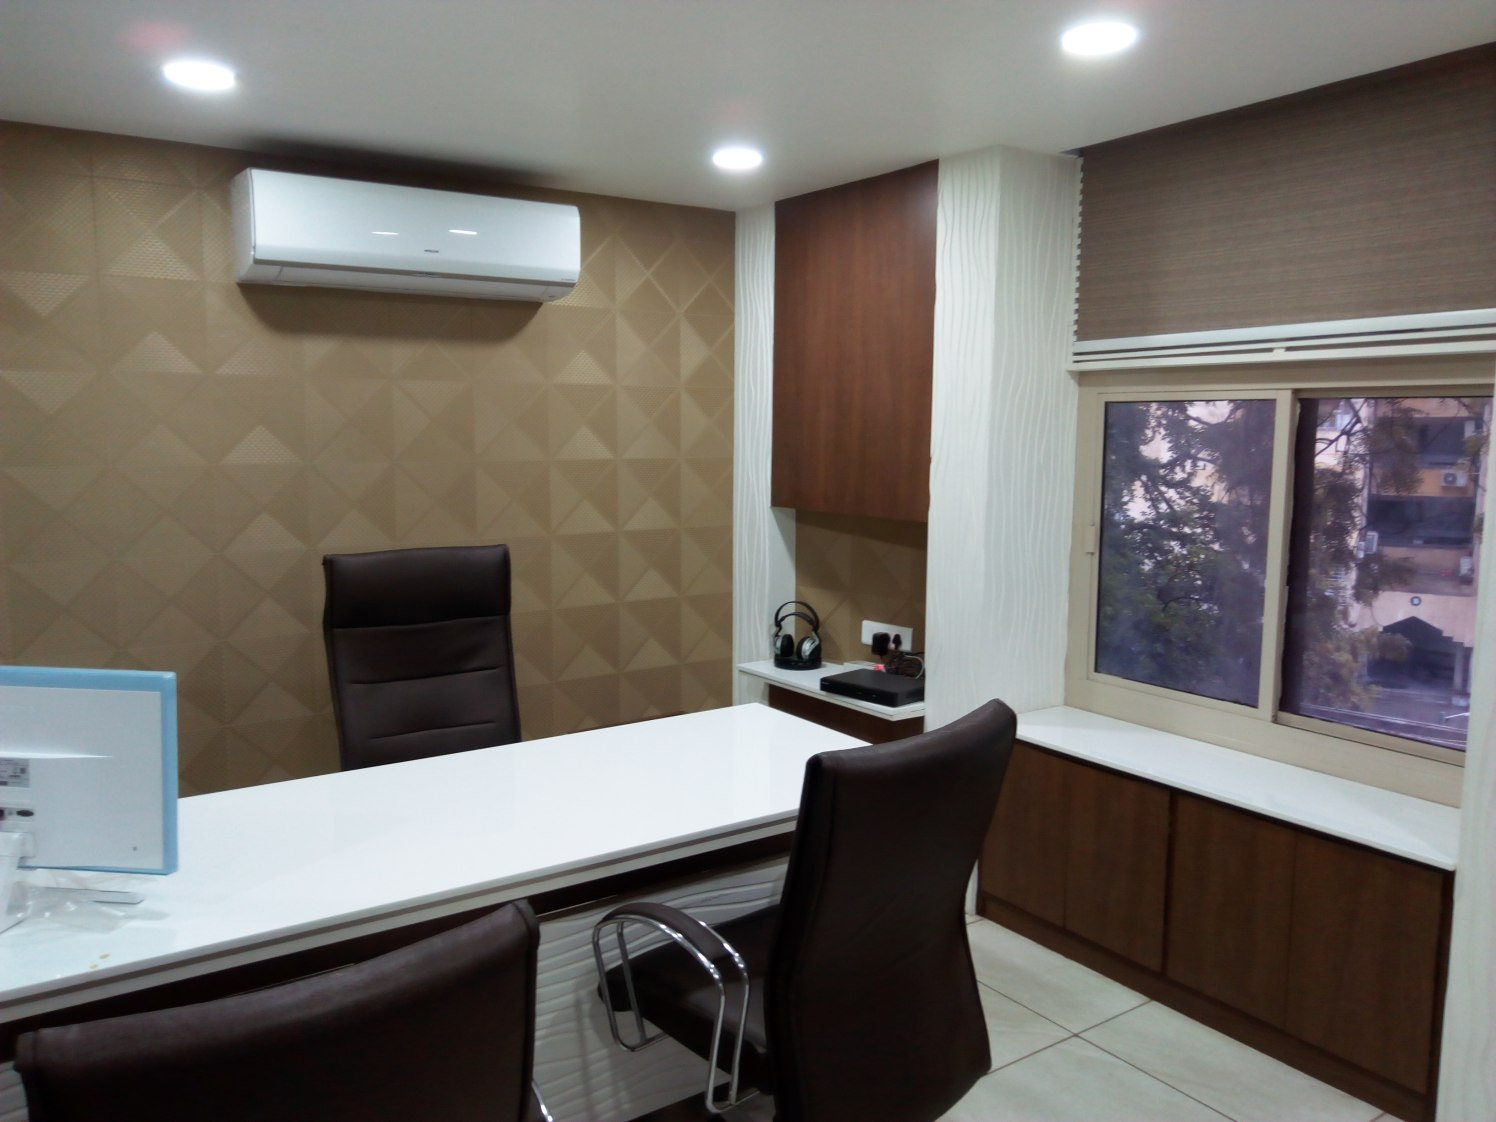 Cubicle by Patel Bhavesh Modern | Interior Design Photos & Ideas